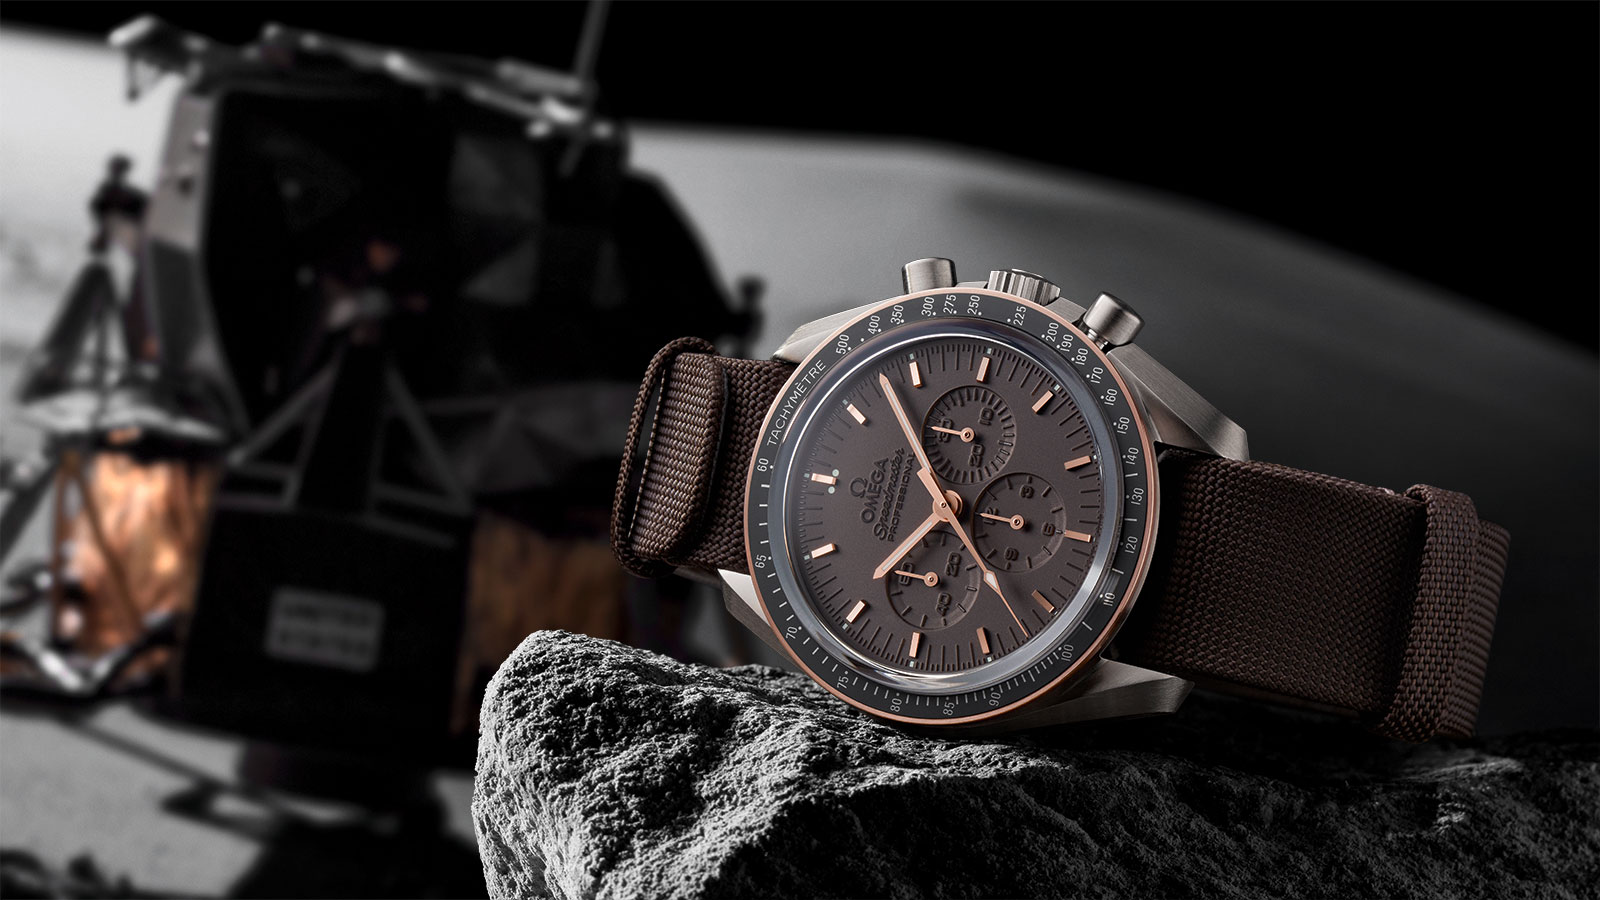 Speedmaster Moonwatch Moonwatch Series Limitadas Aniversario Reloj - 311.62.42.30.06.001